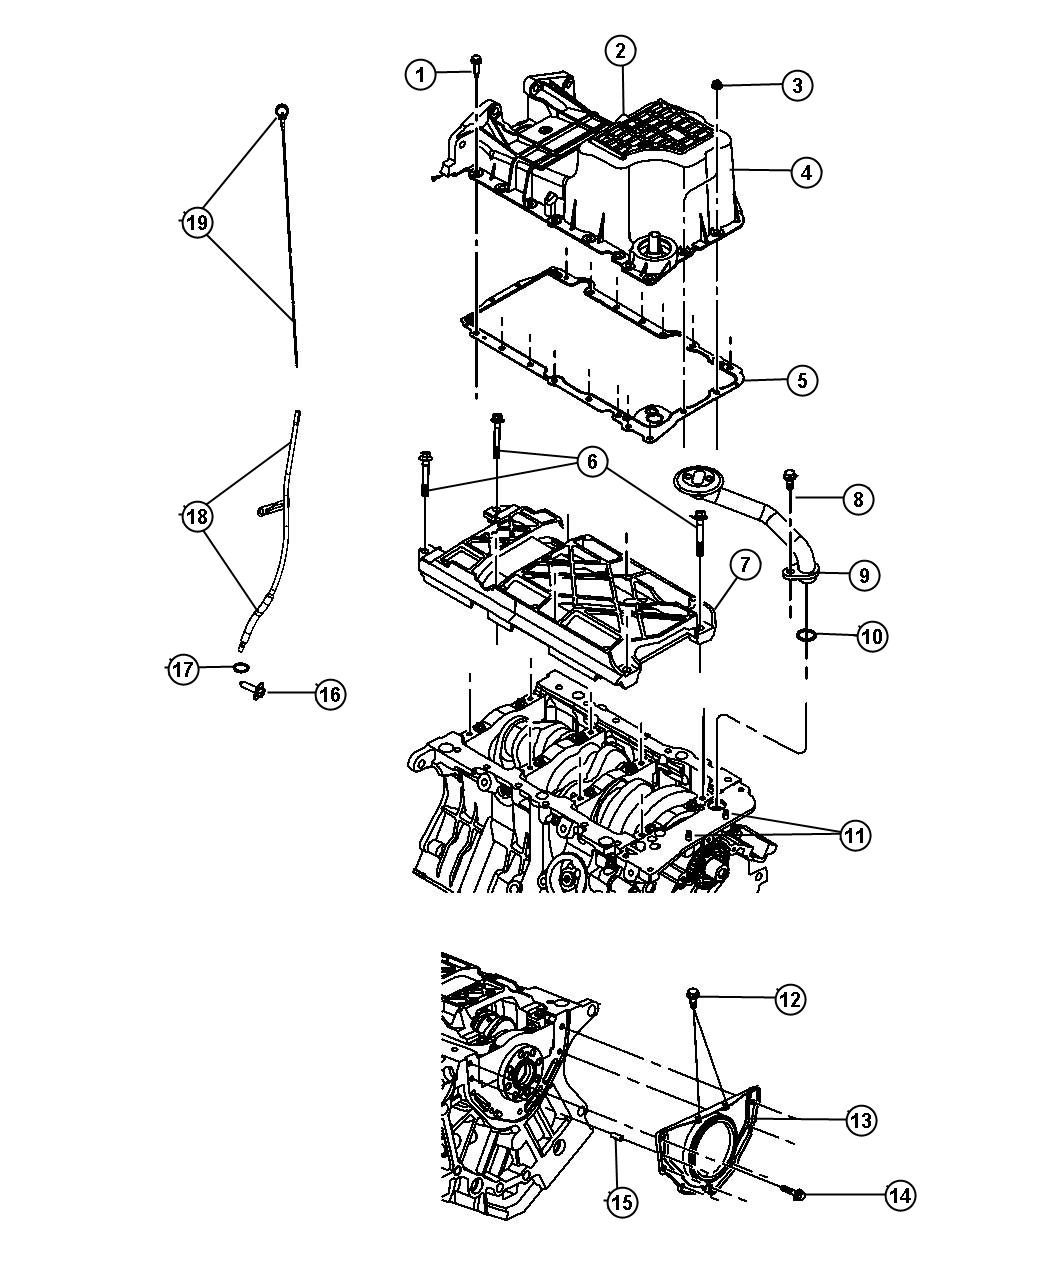 durango wiring diagram further 2004 dodge durango 4 7 engine diagram